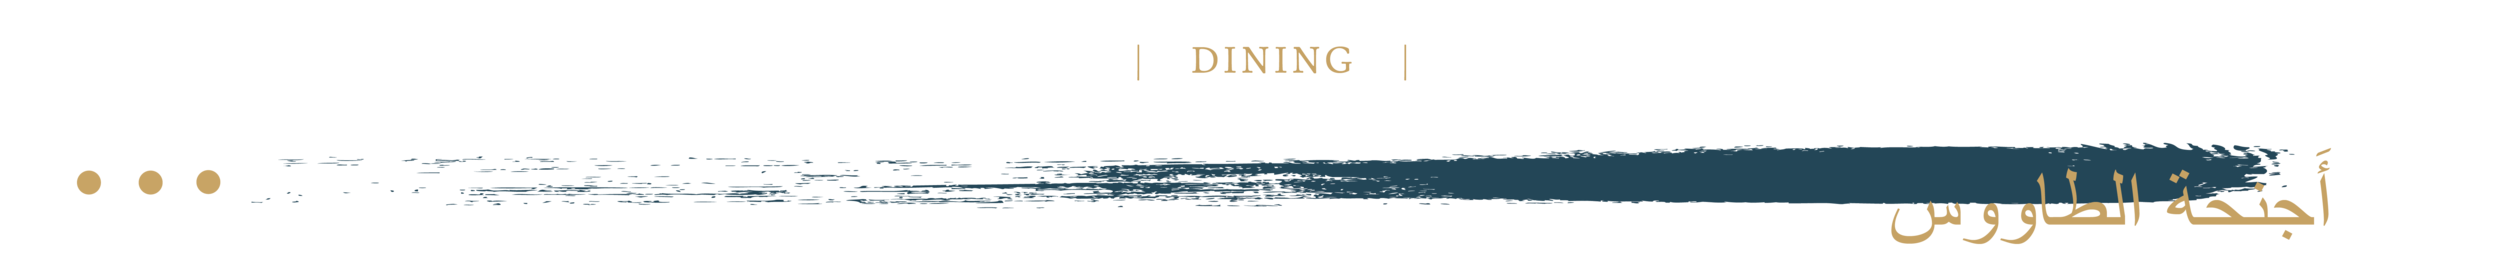 Headers-final-dining-05.png